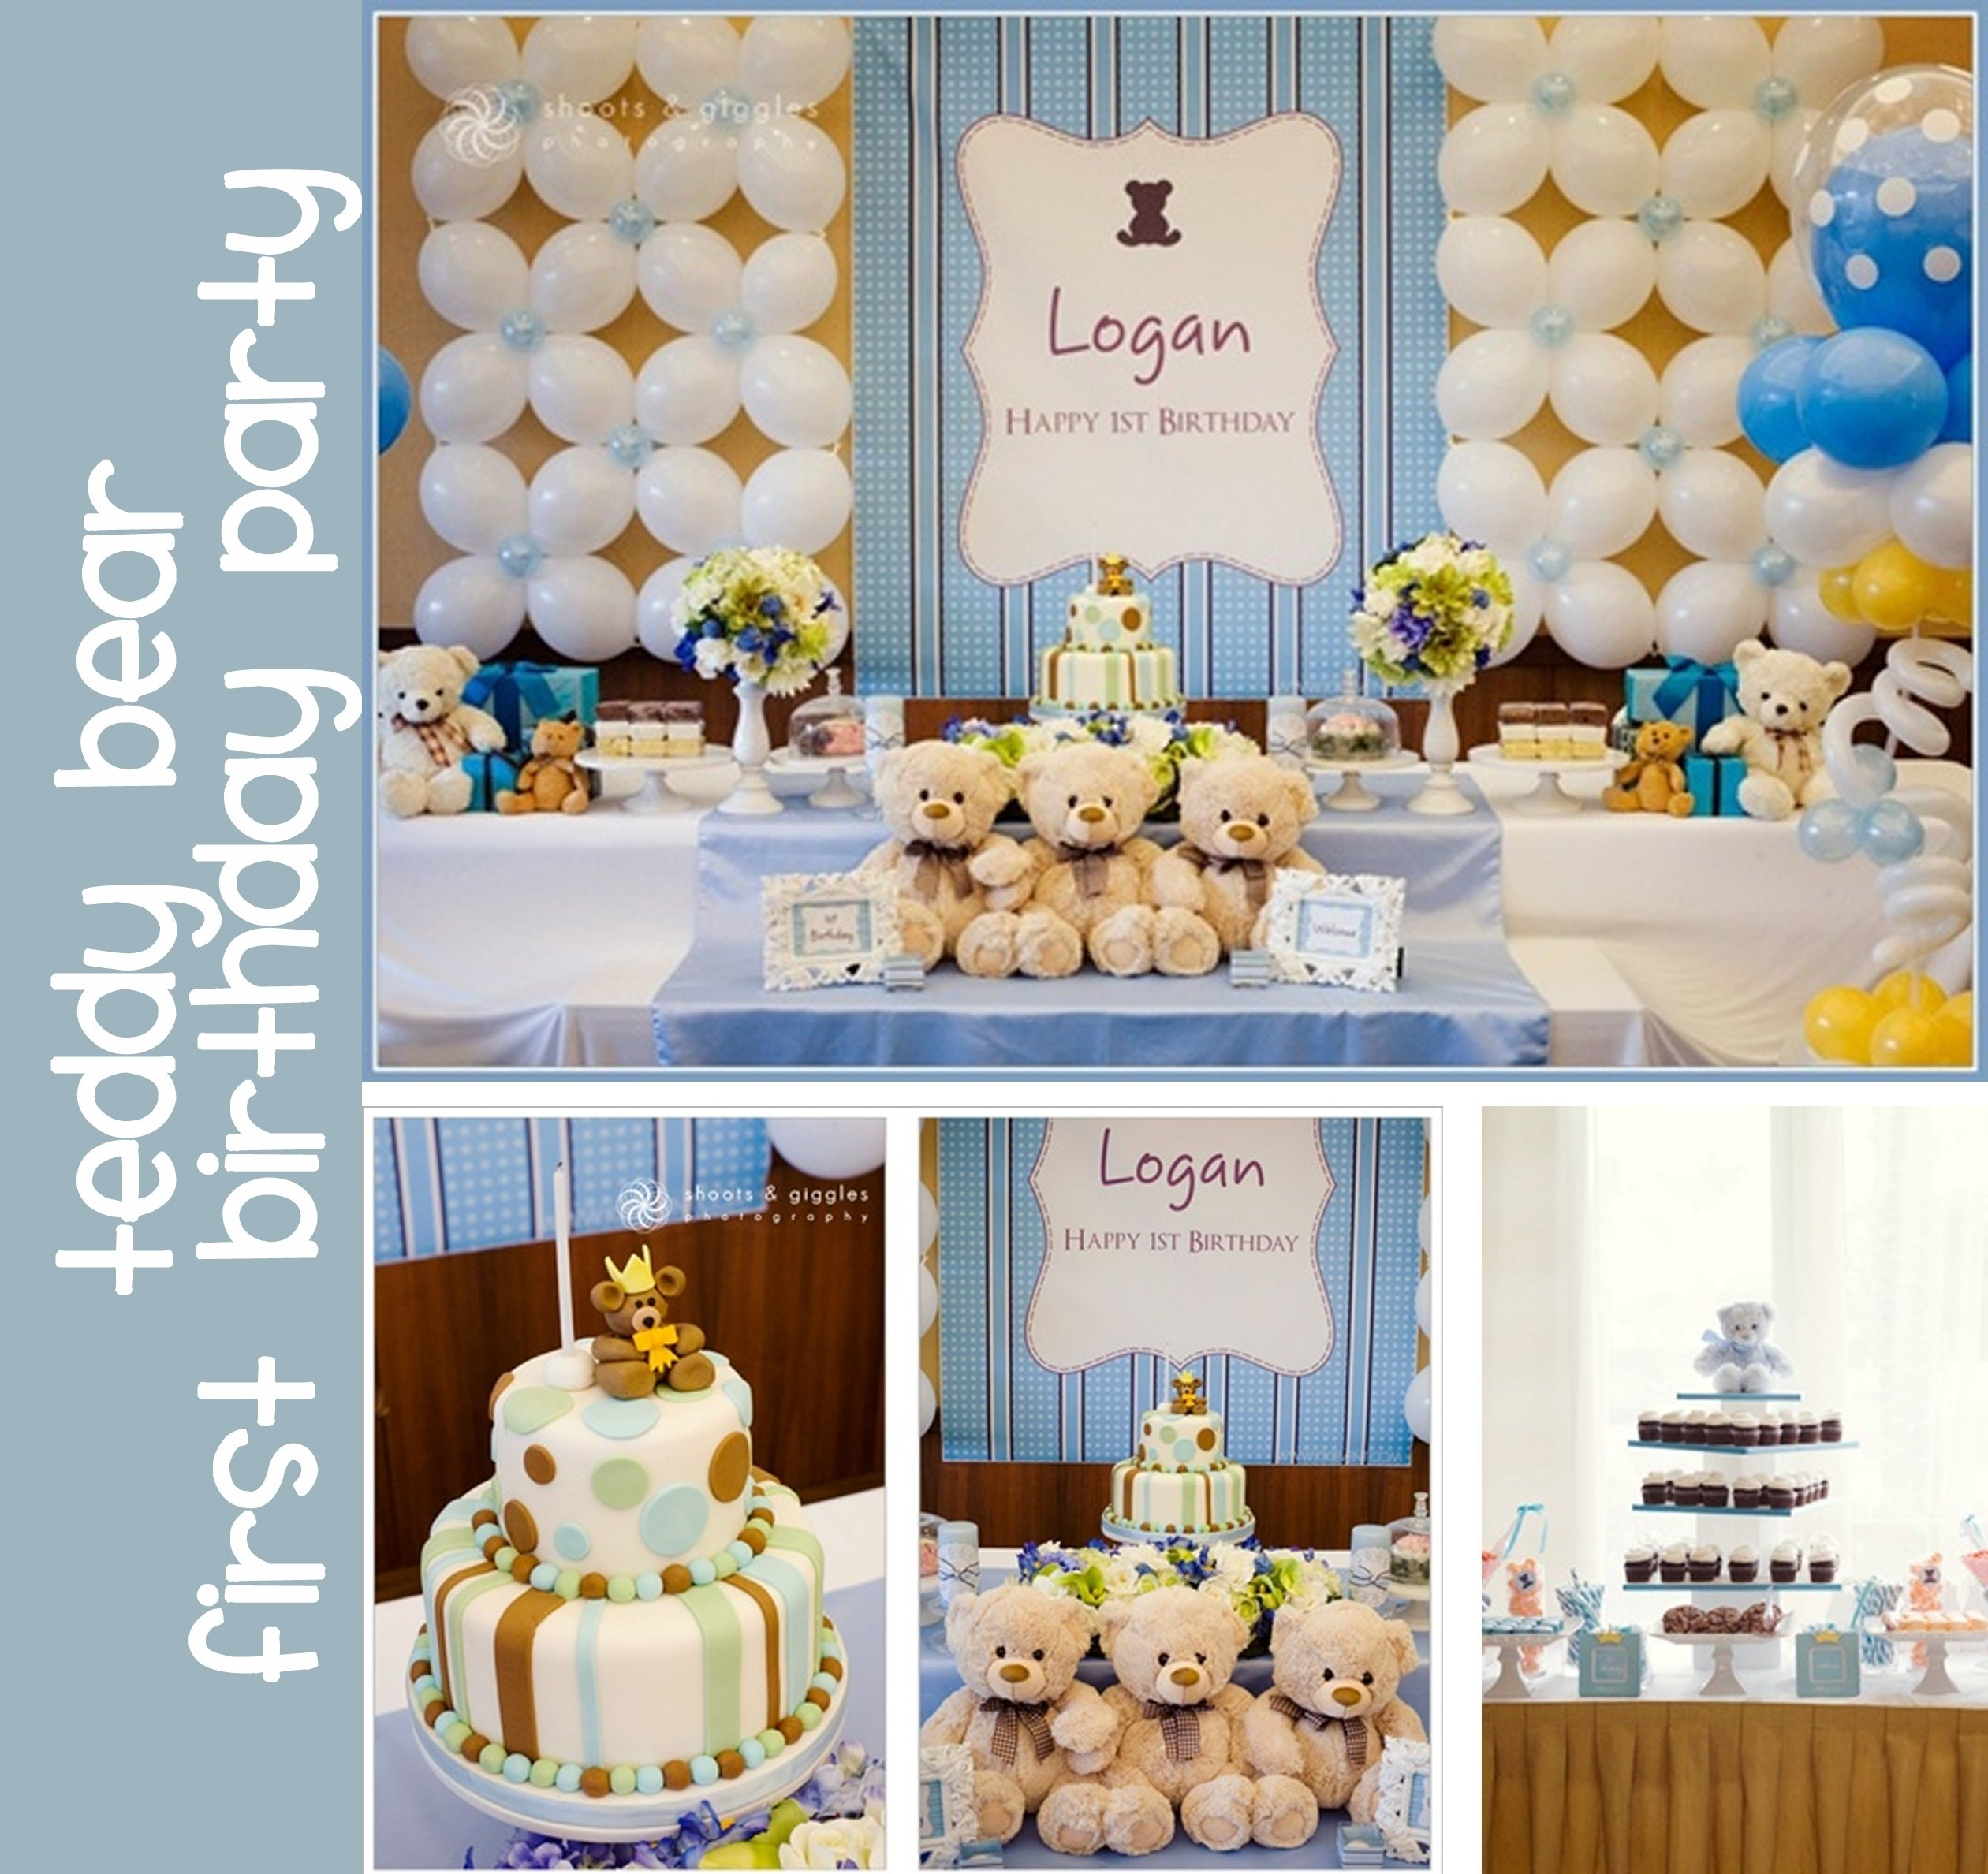 10 Lovely Baby 1St Birthday Party Ideas baby first birthday ideas for boy first birthday teddy bear theme 5